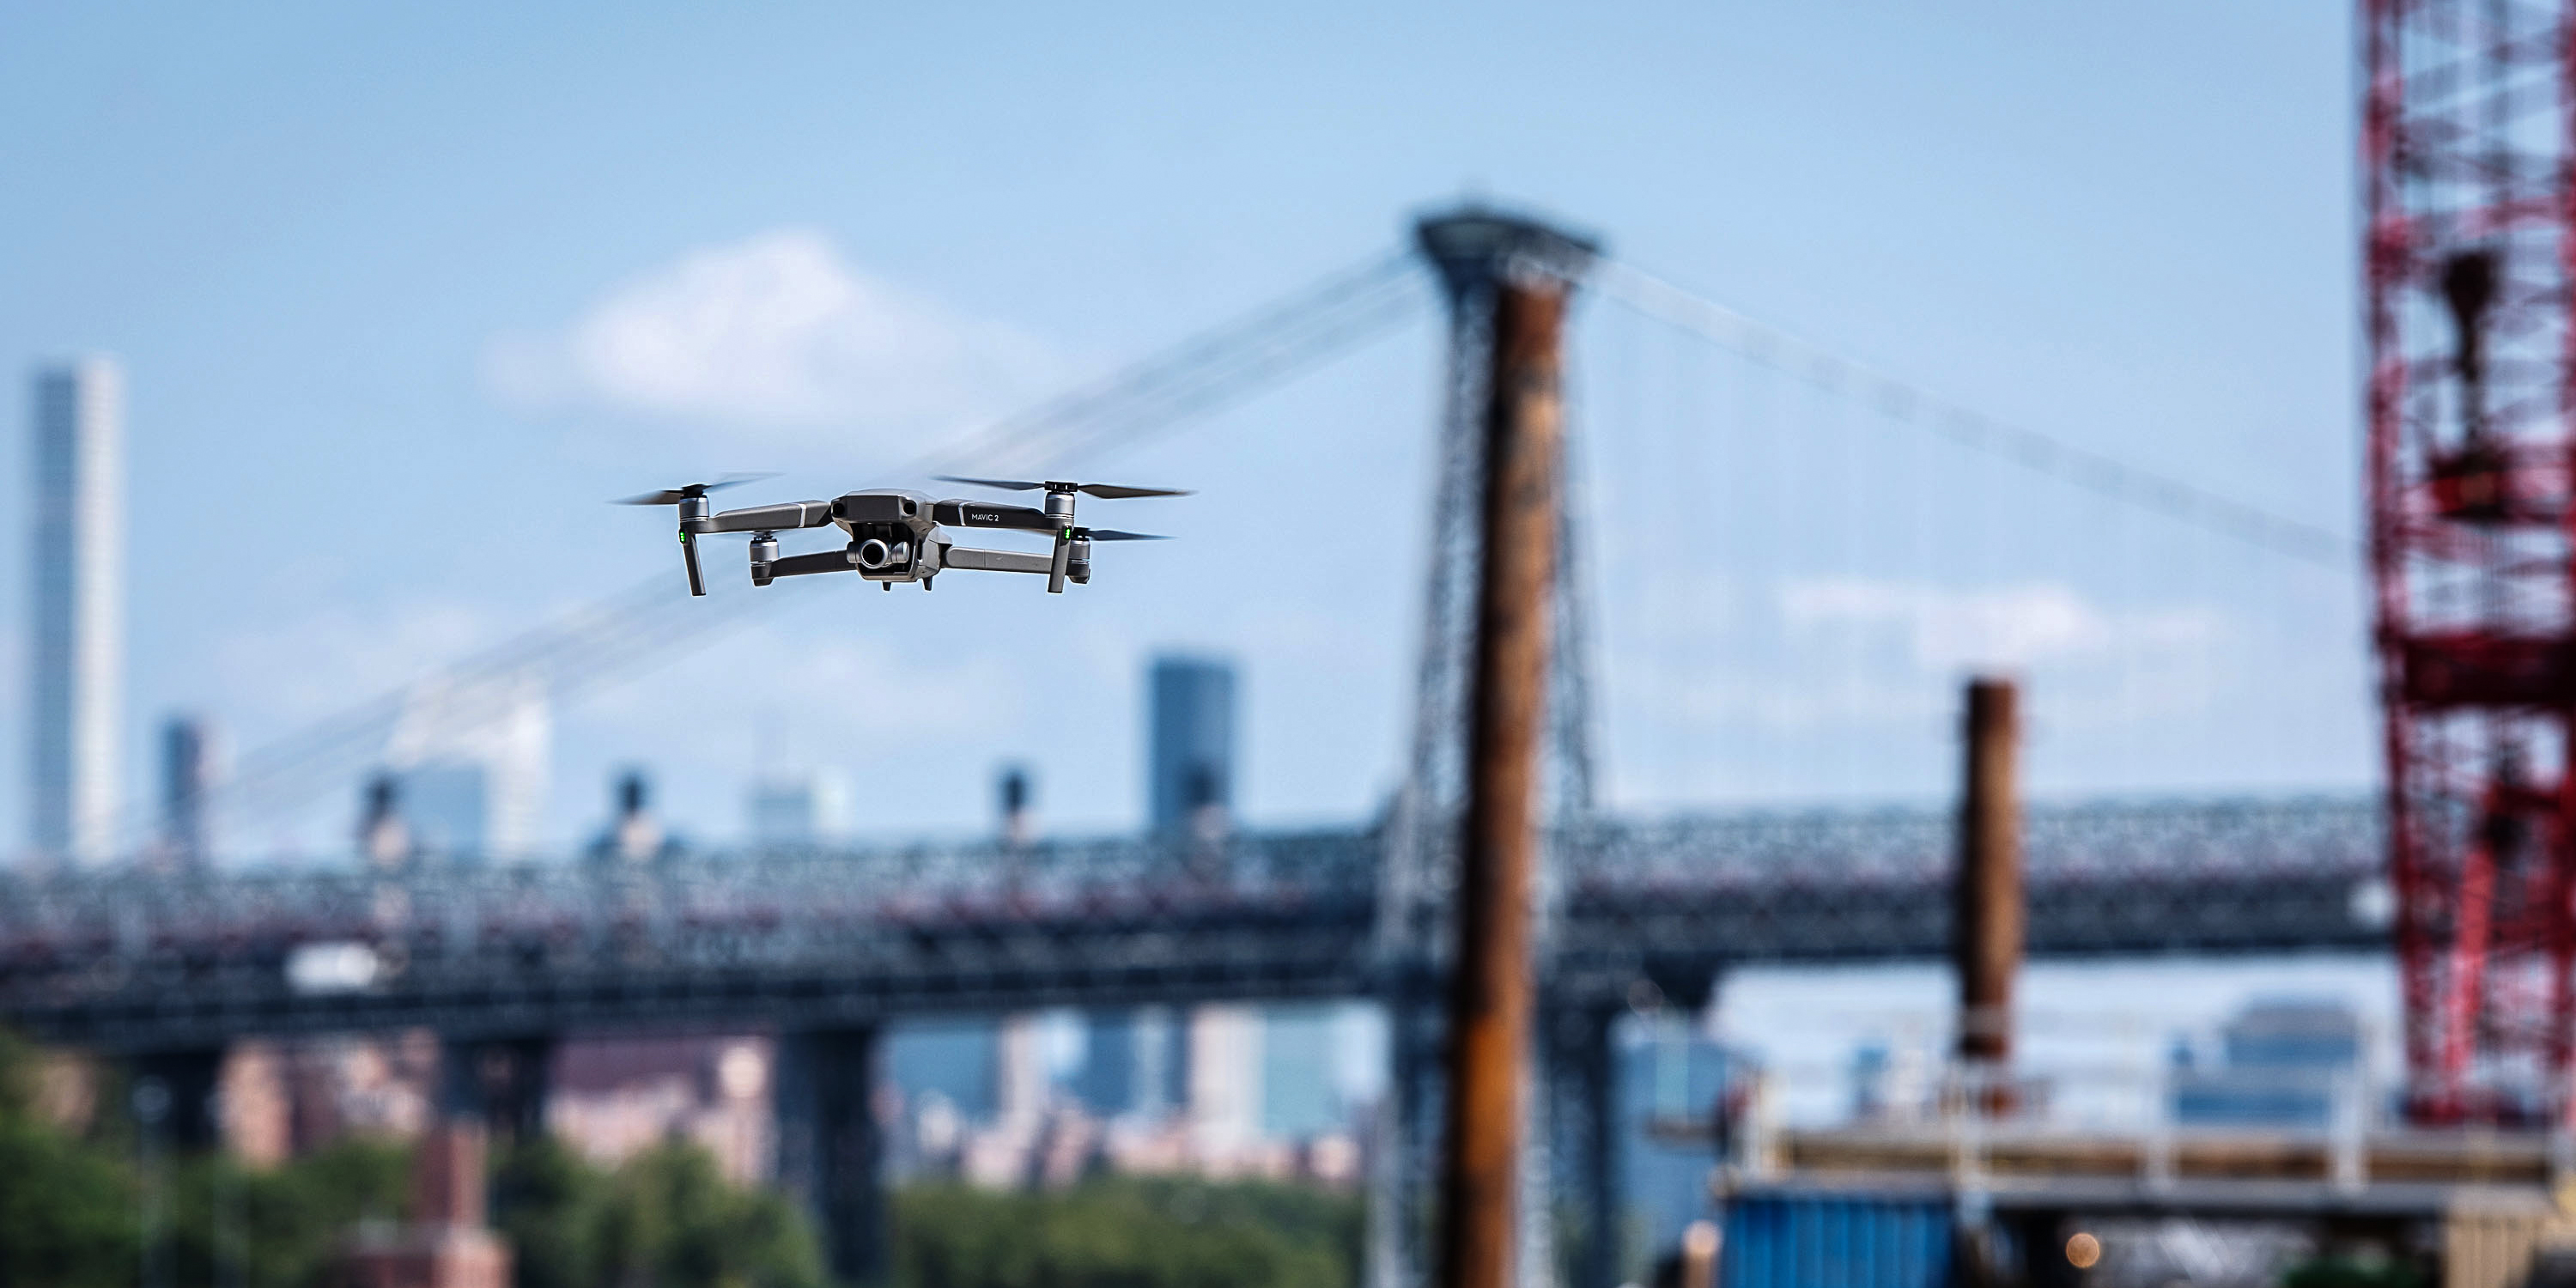 The NYPD Is Using Drones the U.S. Government Claims Threaten National Security